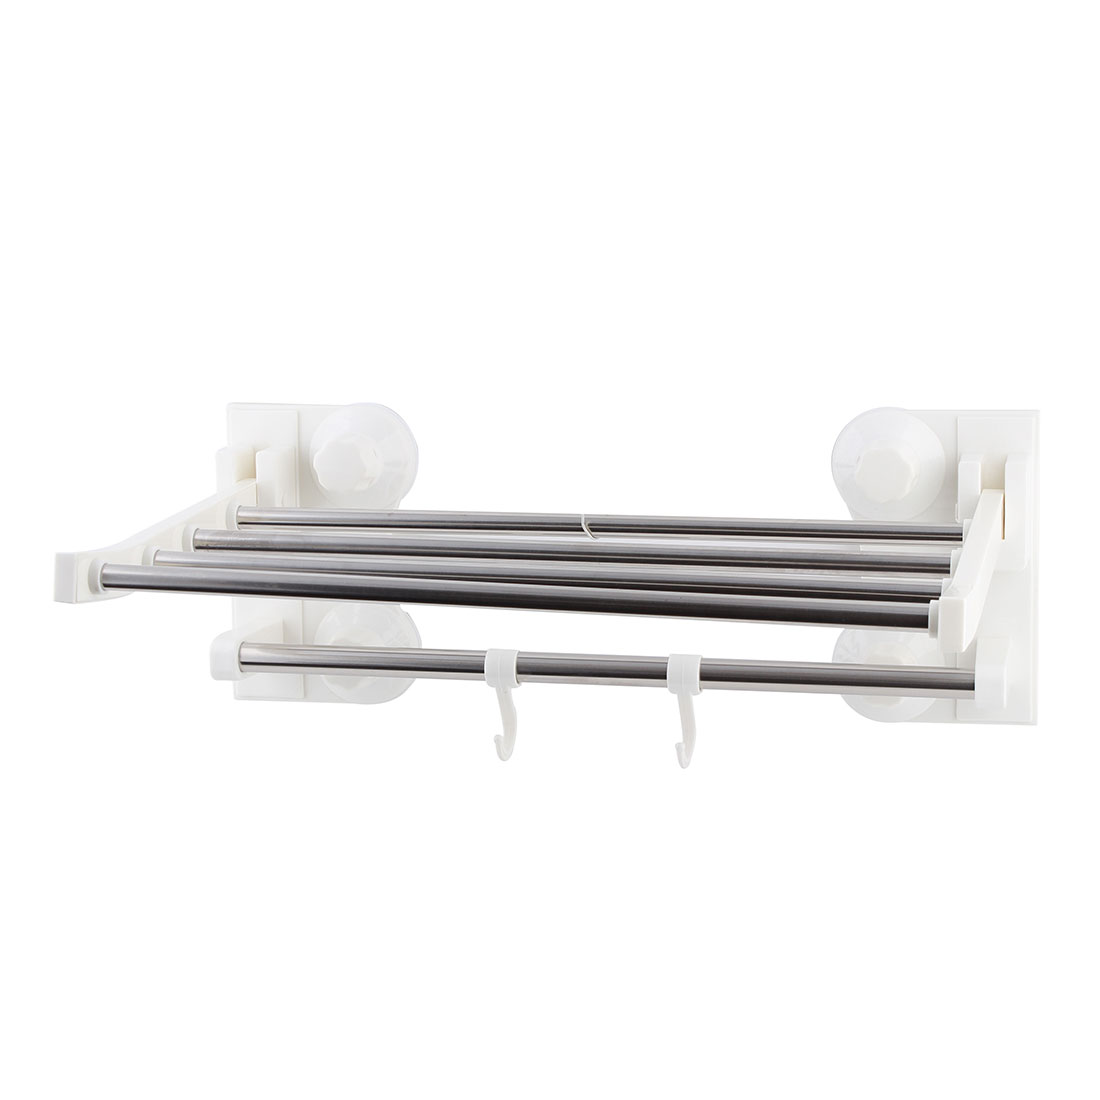 Bathroom Stainless Steel Wall Mount Suction Cup 5 Towels Rack Hanger Silver Tone